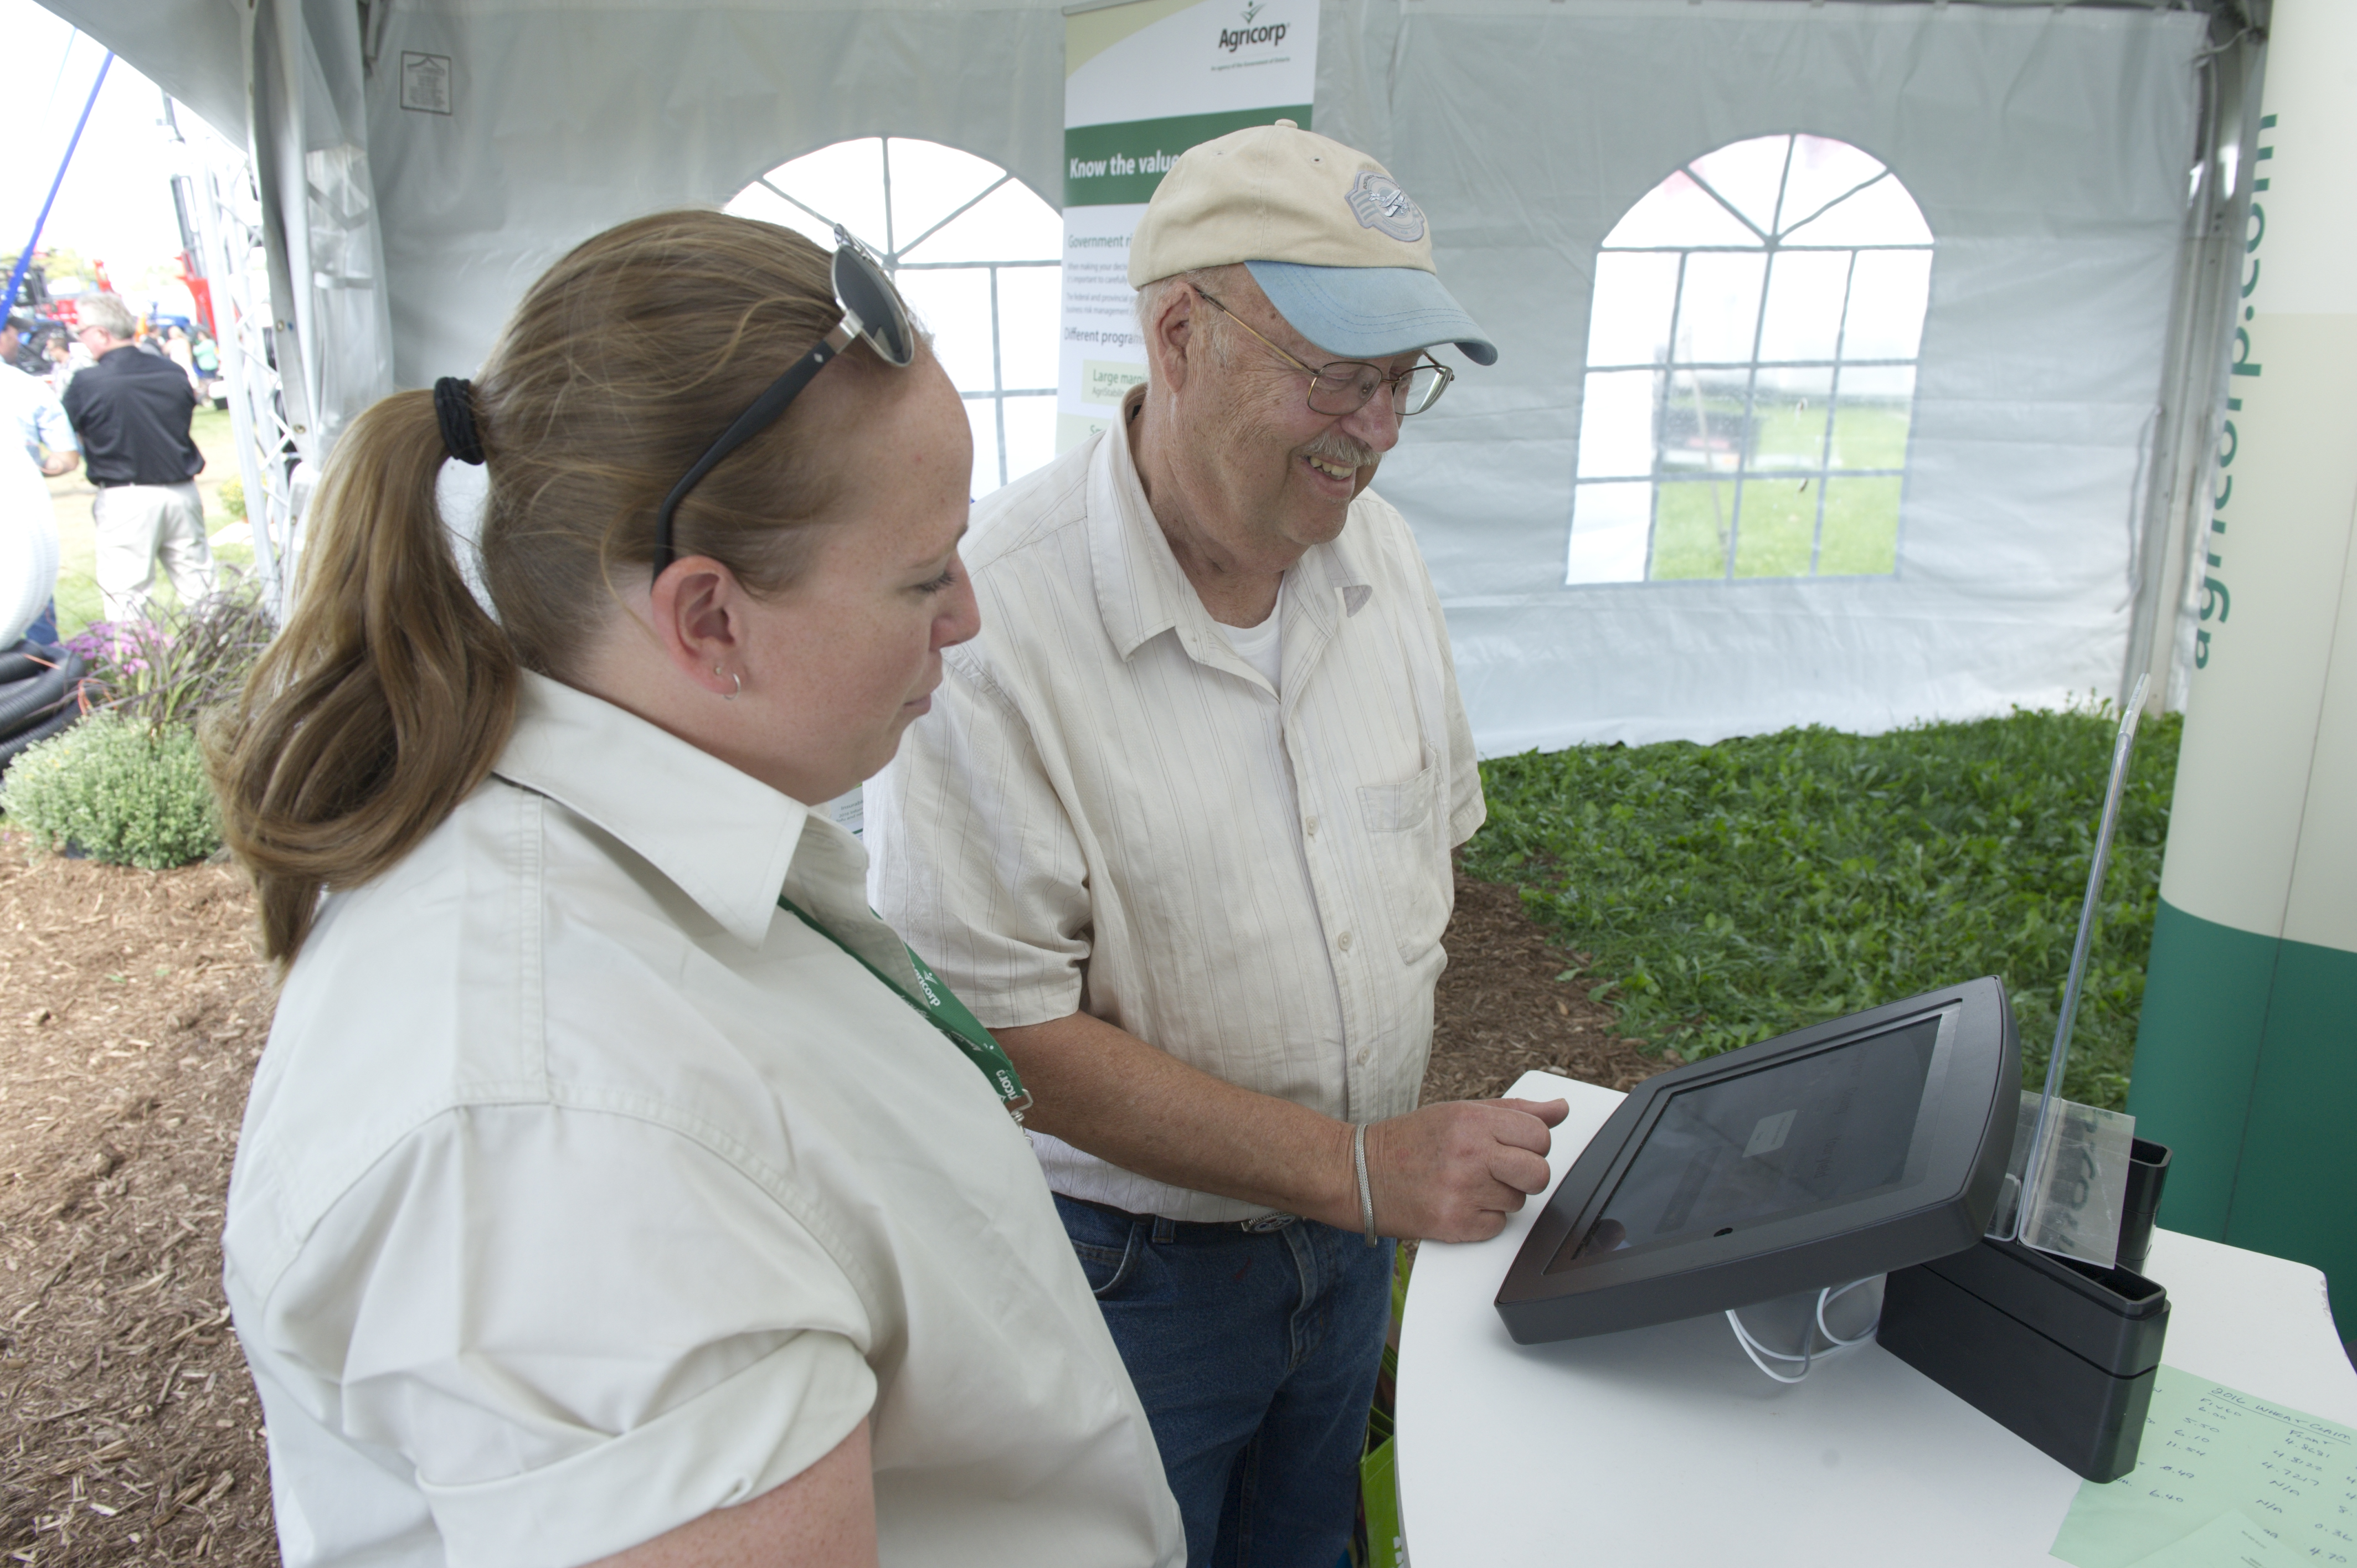 An Agricorp staff member helps a producer use a kiosk to access information at a farm show.